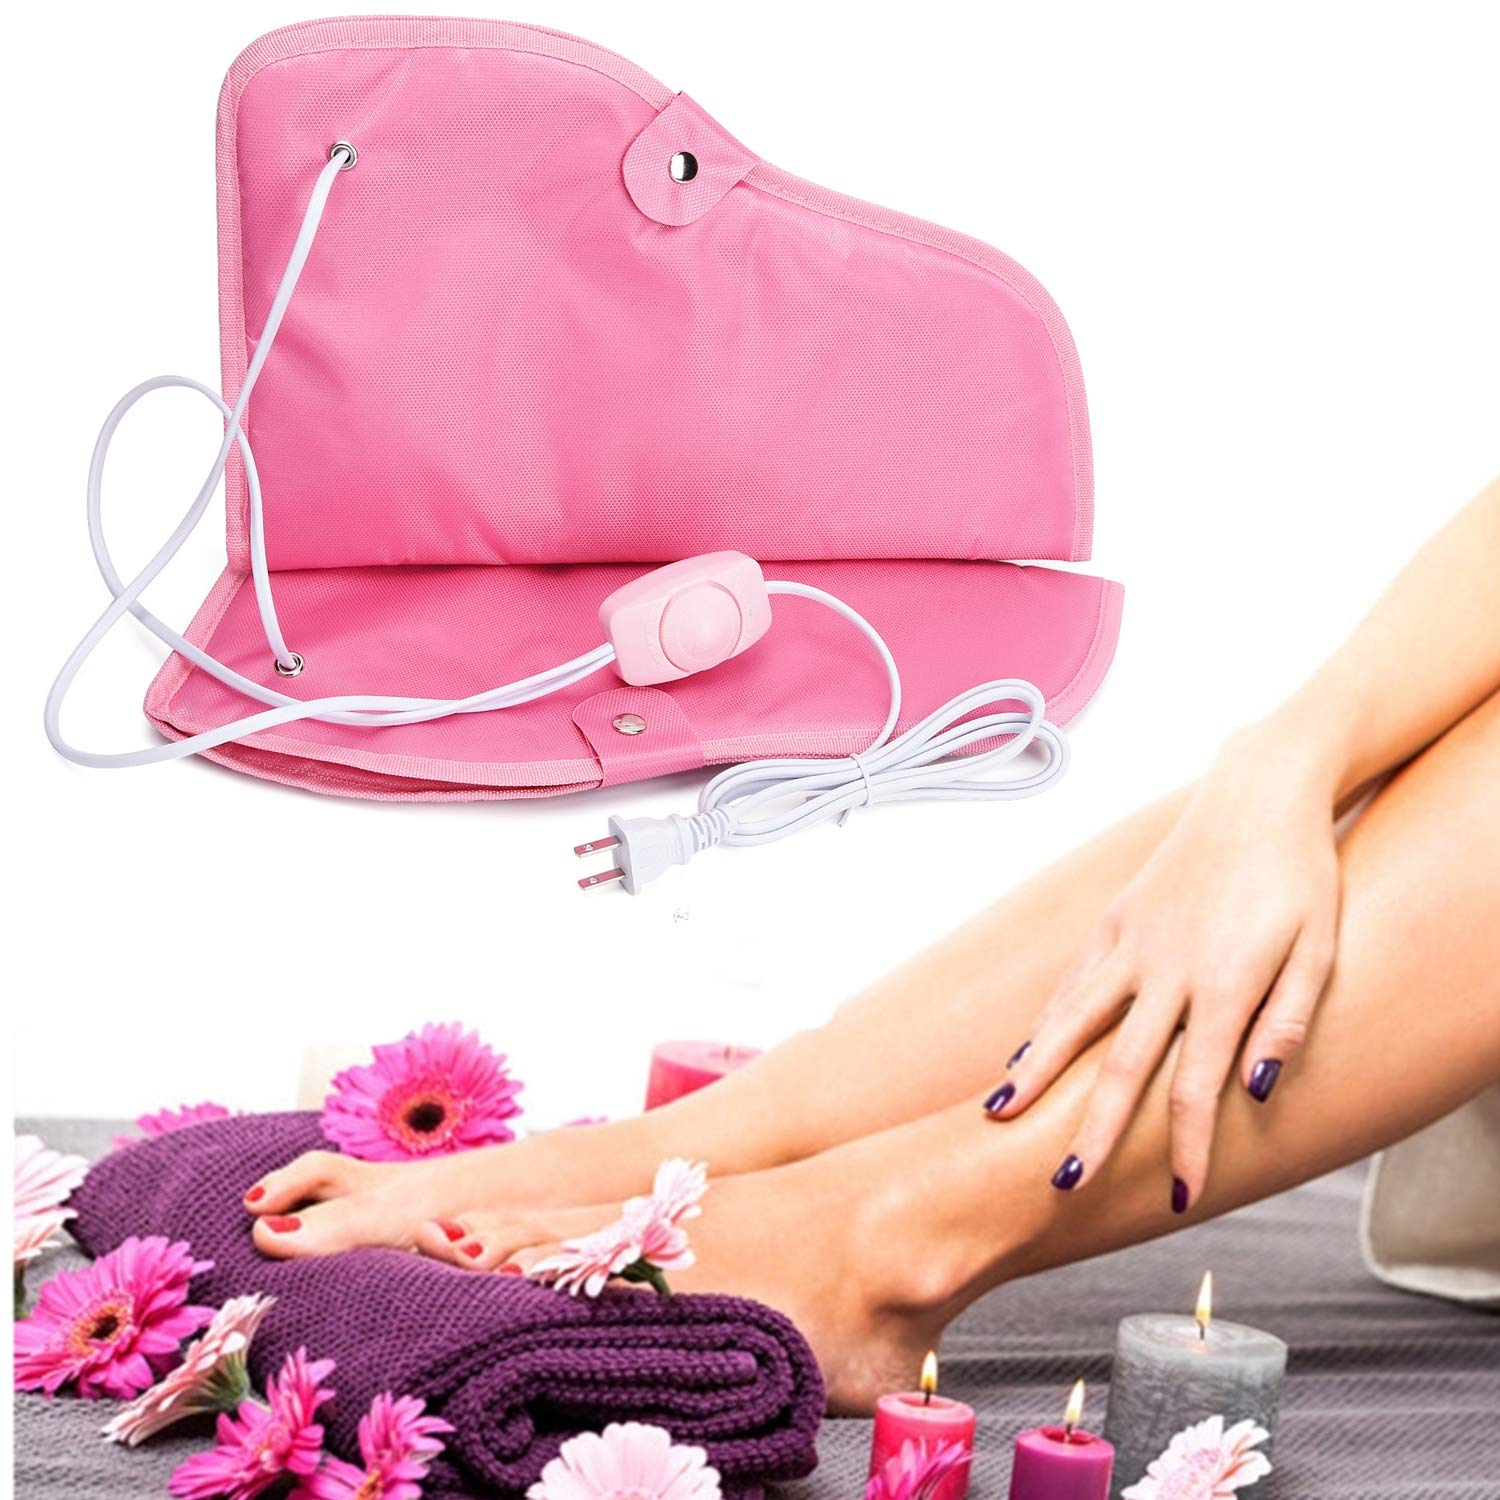 Paraffin Wax Heated Booties, Electric Heated Nail Art Manicure Foot Cover, Infrared Wax Therapy Treatment SPA Warmer Kit For Foot Care